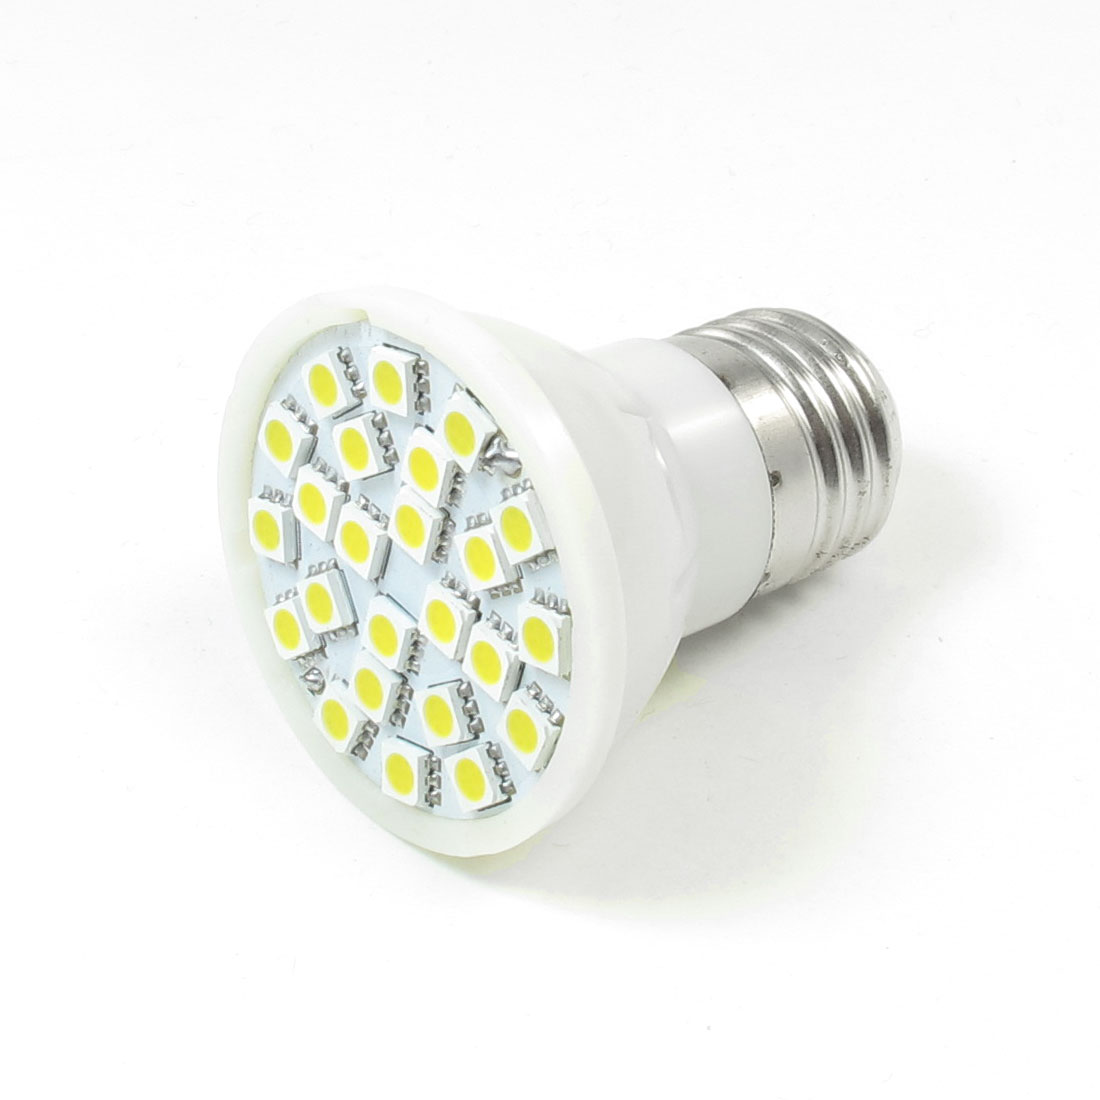 220V AC E27 24 SMD 5050 LED Spotlight Bulb Light Warm White